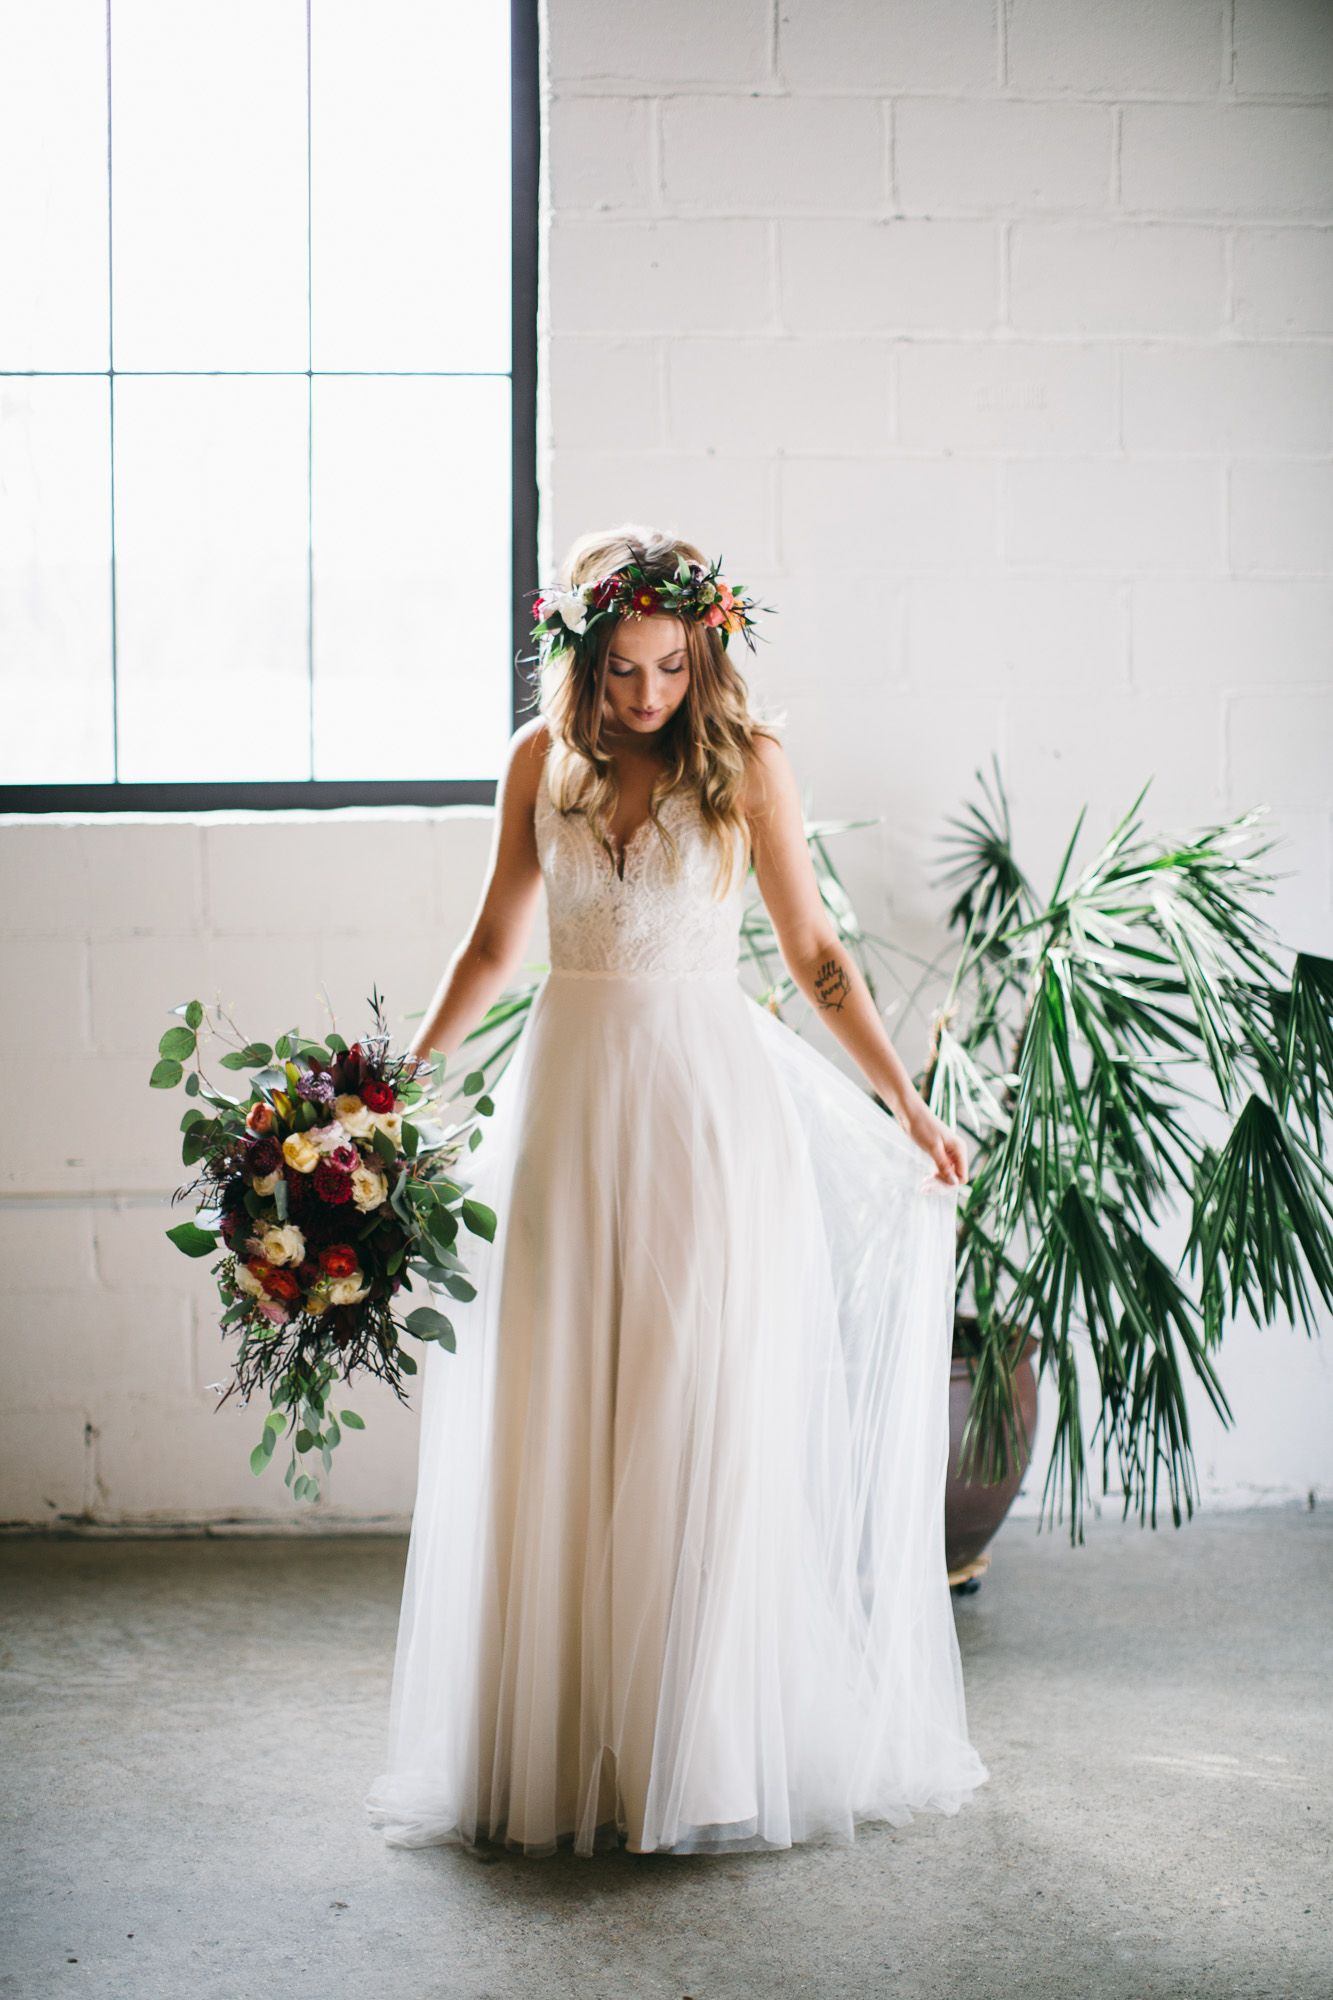 Modern White + Botanical Floral Wedding Inspiration!    Styling + Photography: Plaid Poppy Co  Floral: Eclectic Elegance  Wedding Dress: The White Room Mpls  Venue: Paikka